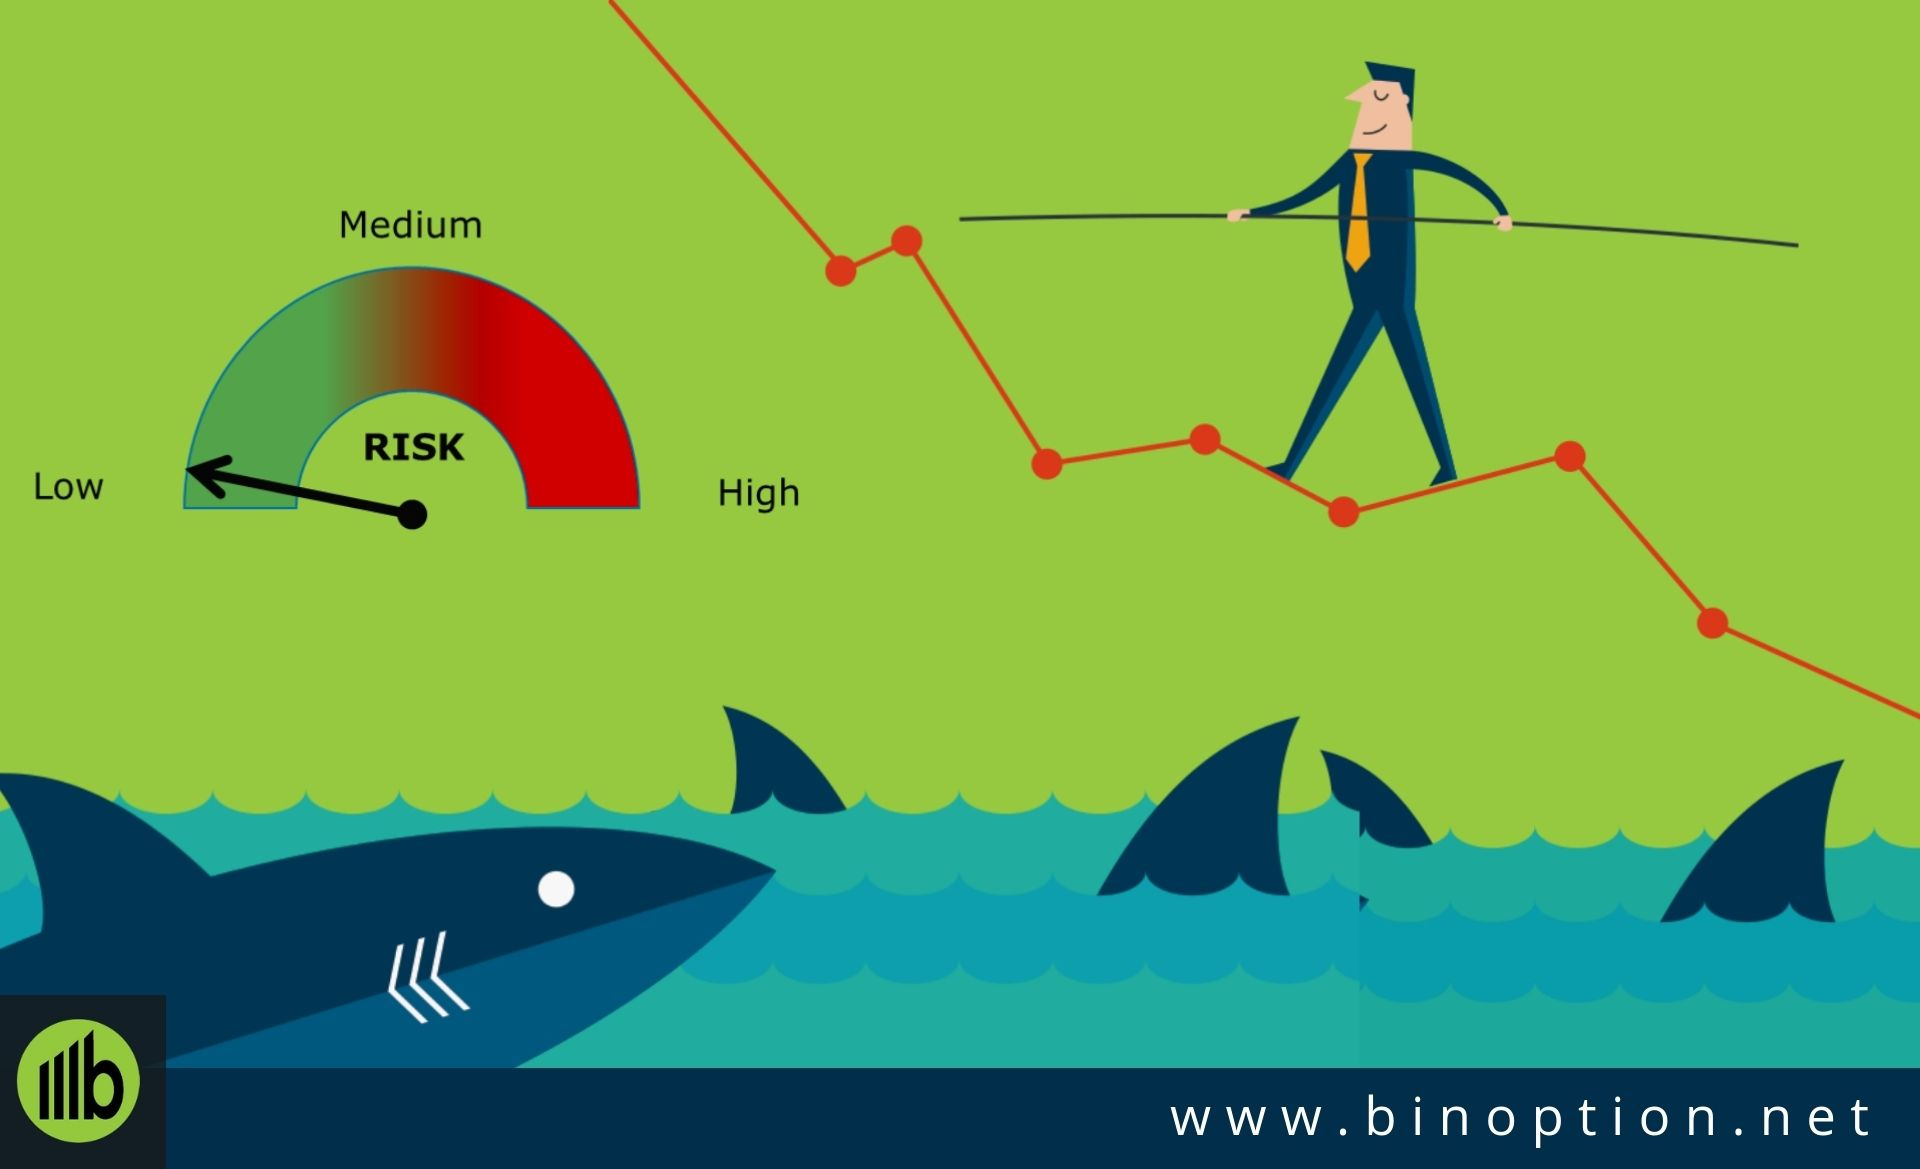 Binary options fishing net strategy where can i bet on mma fights